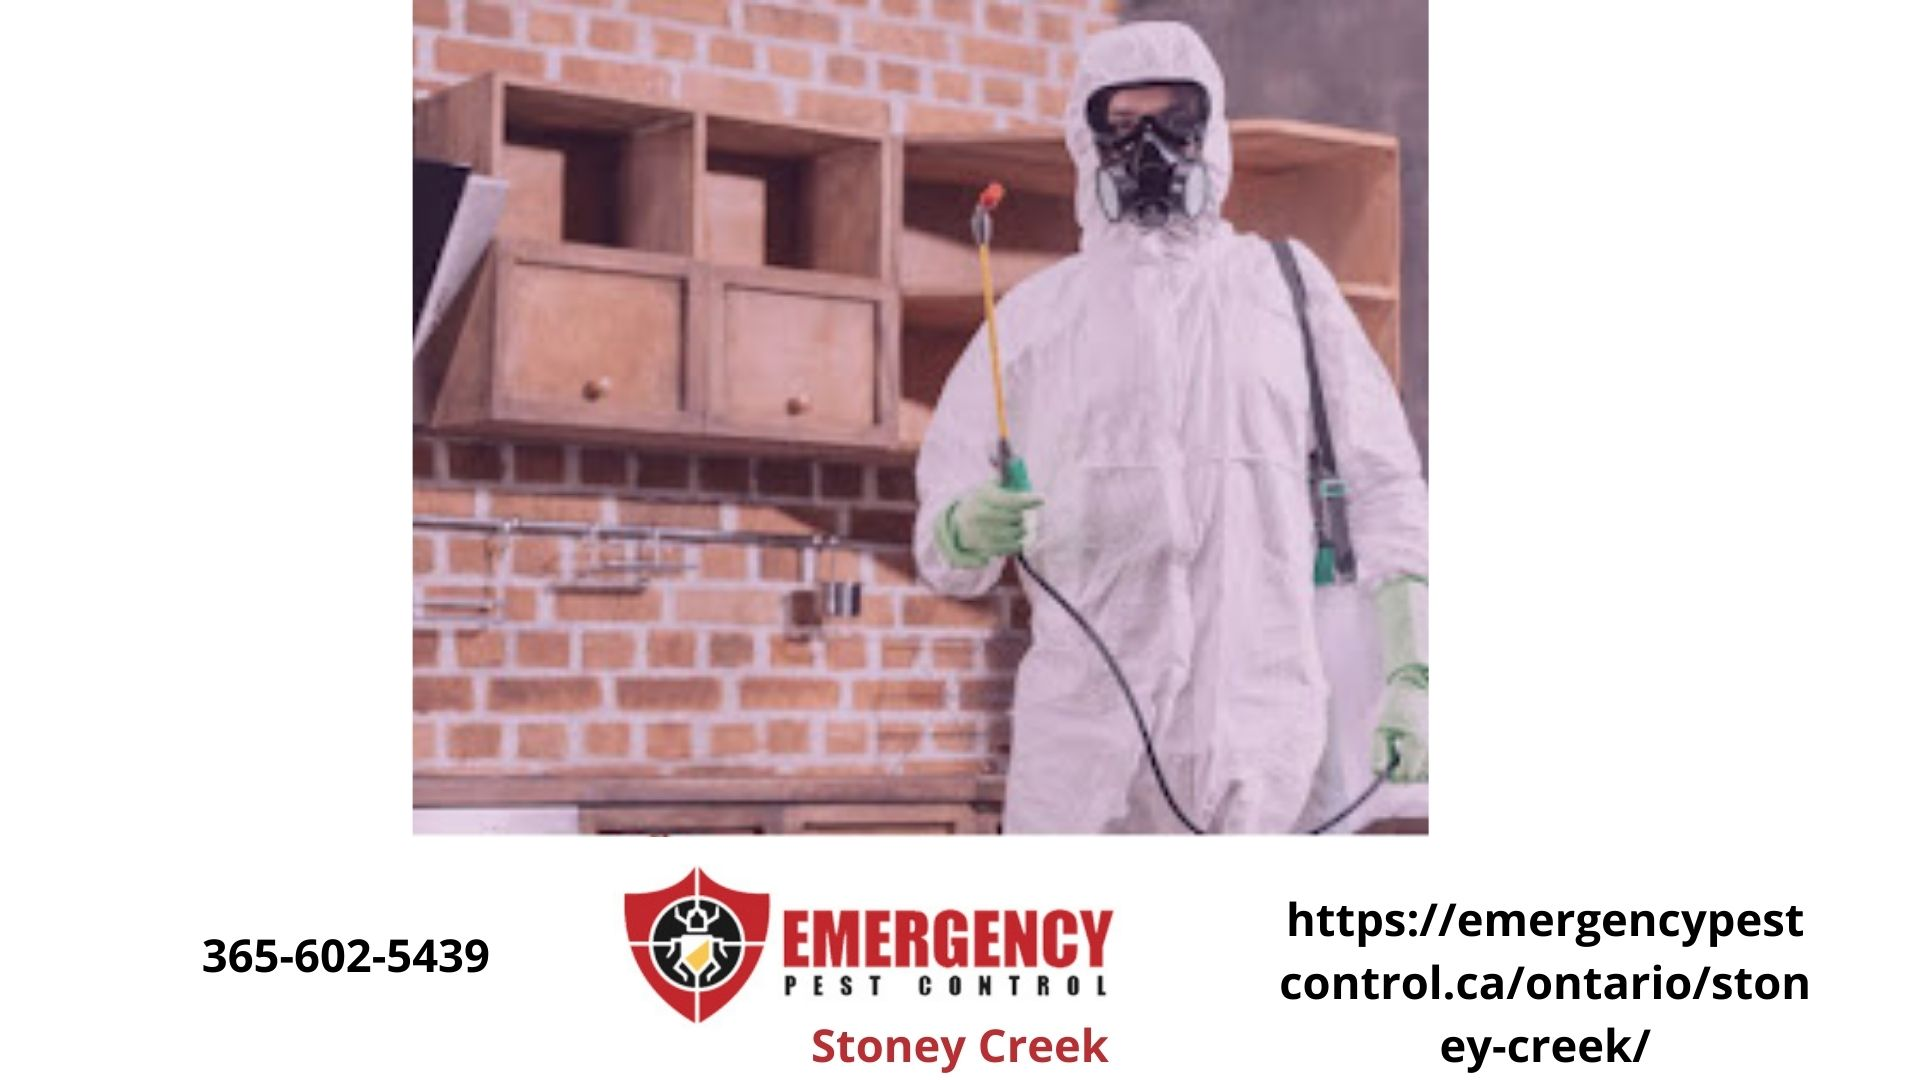 exterminator in full protective clothing